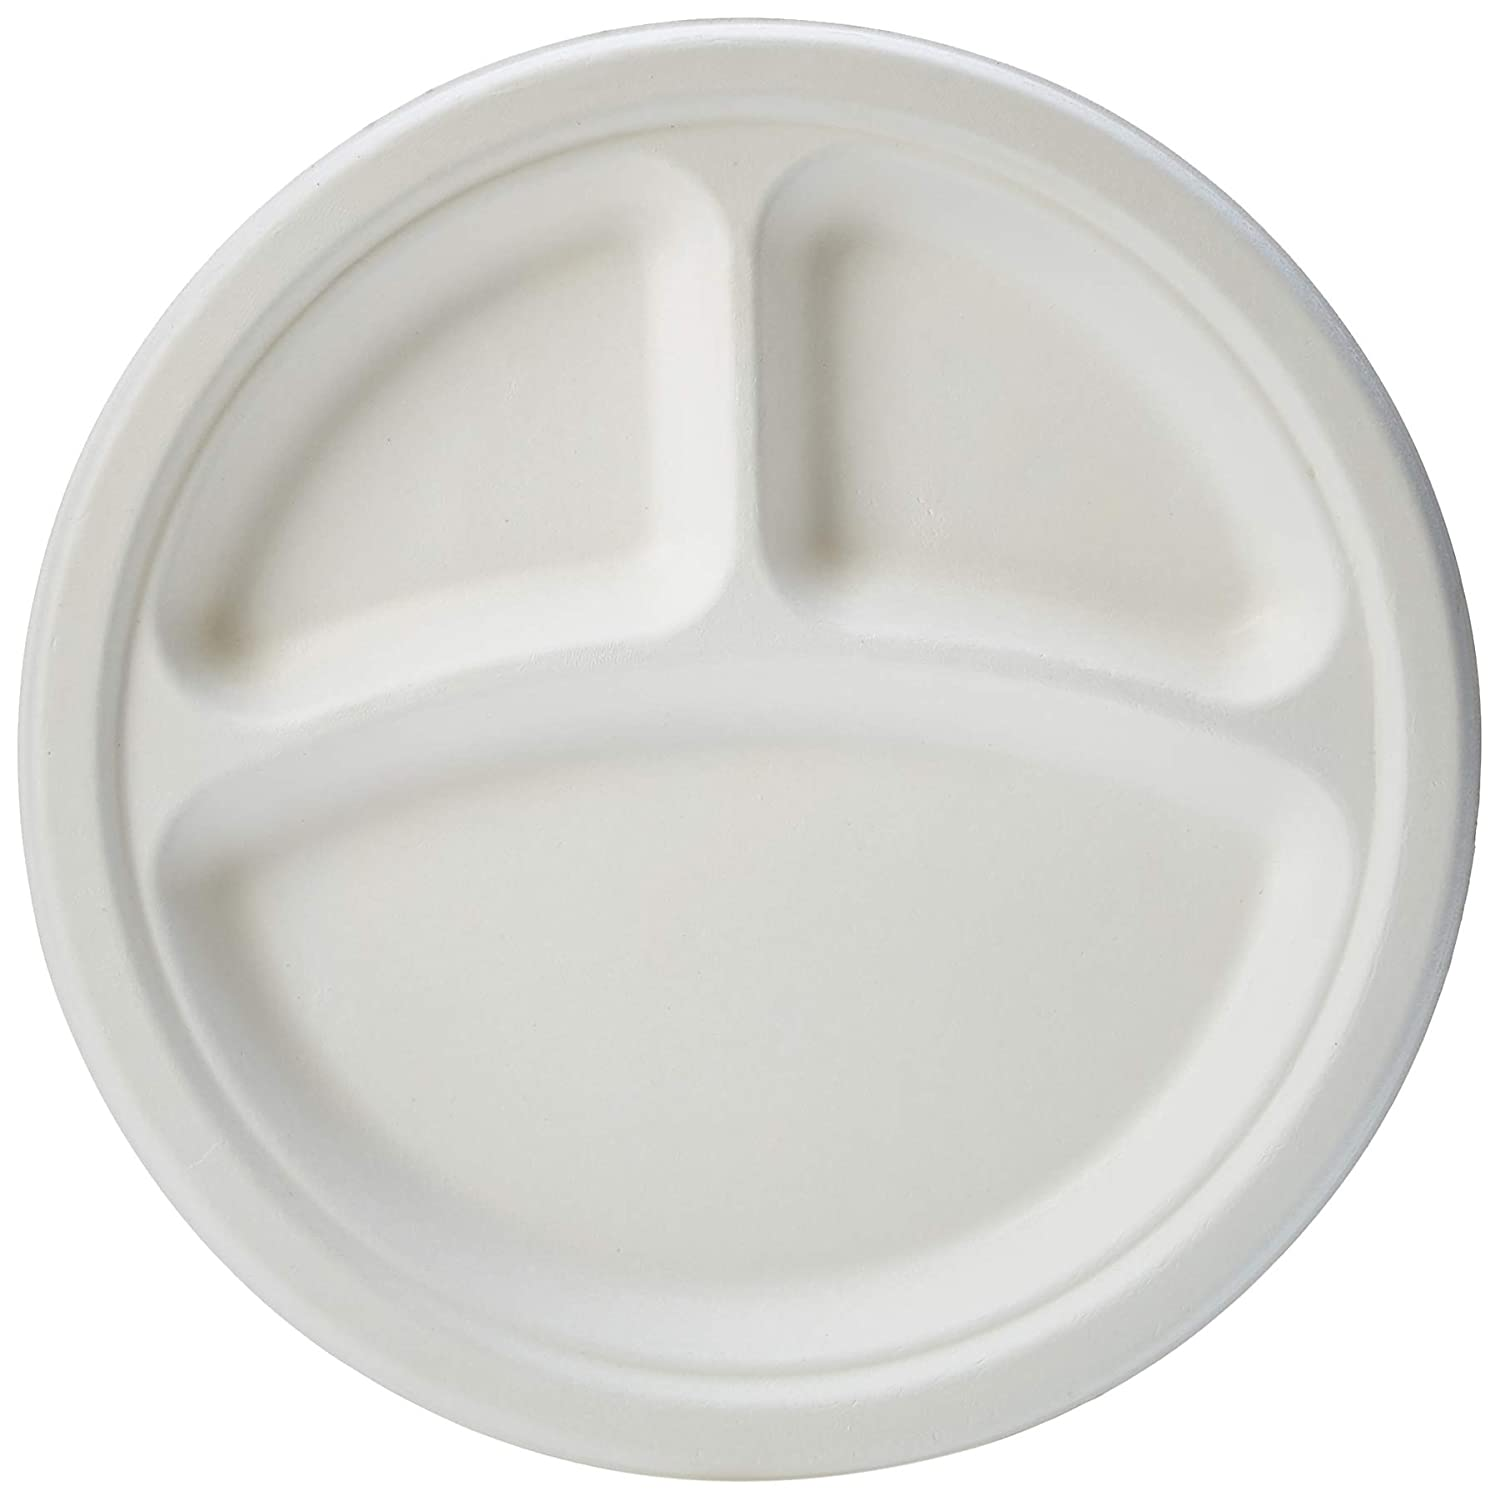 AmazonBasics Compostable Plate, 3 Compartment, 10-Inches, 500 Plates